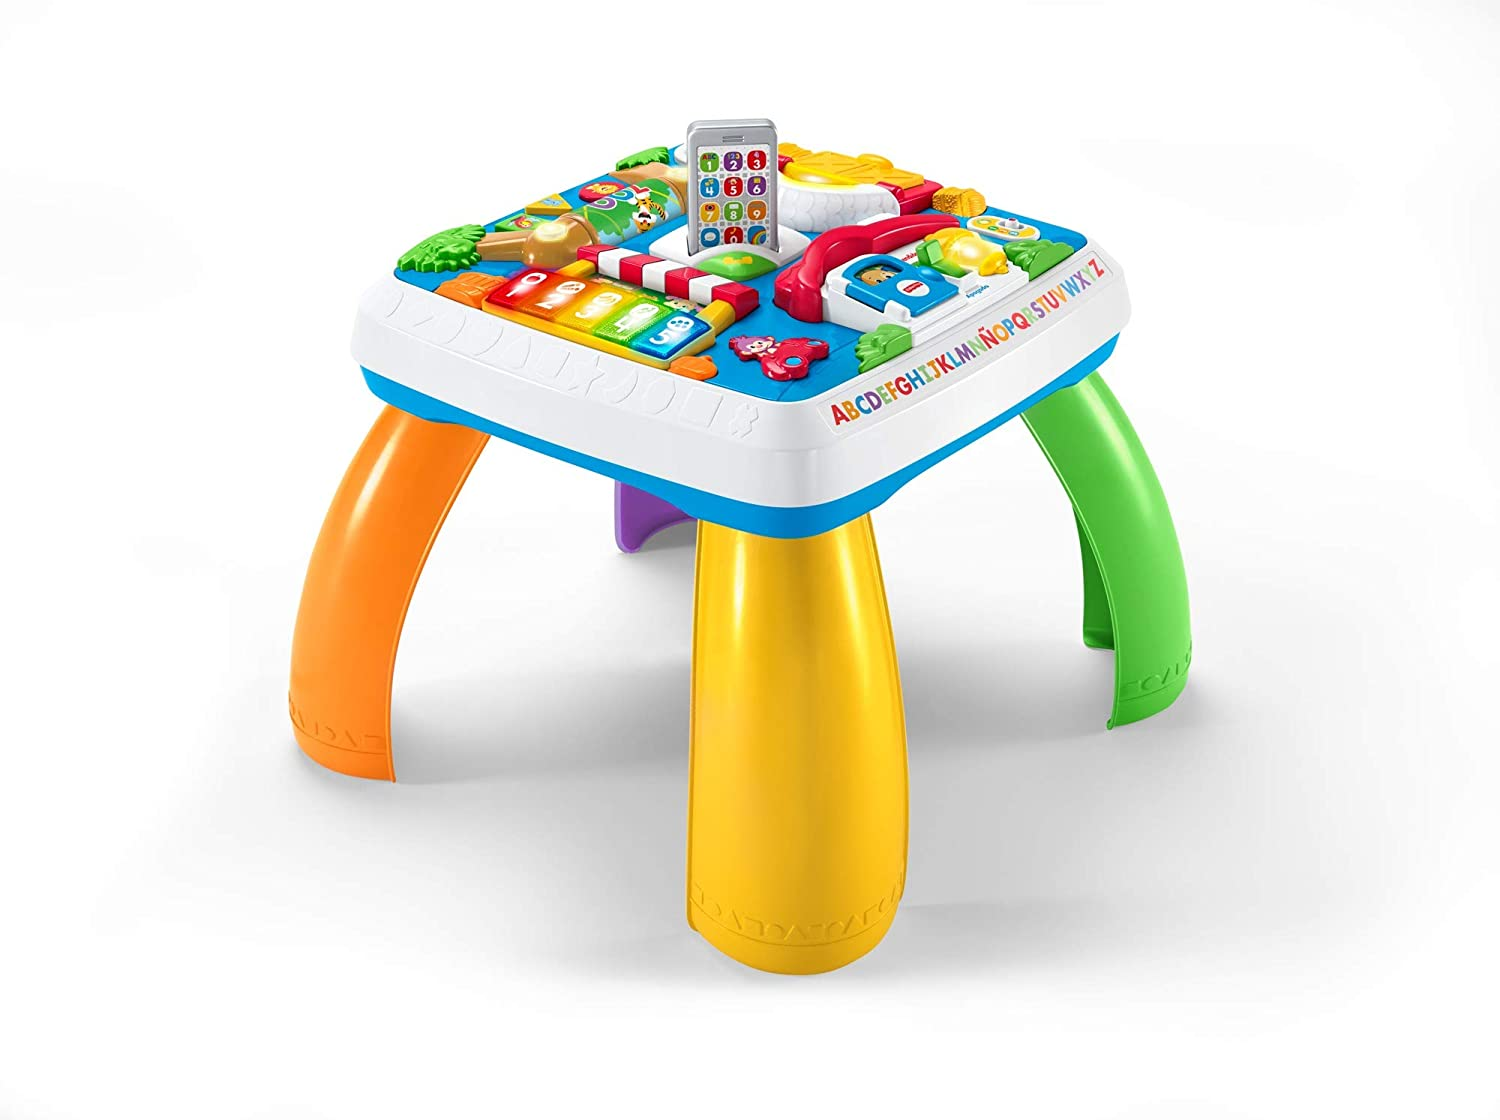 Fisher-Price puppy love Mesa multiaprendizaje bilingüe, juguetes educativos, multicolor (Mattel DRH34)